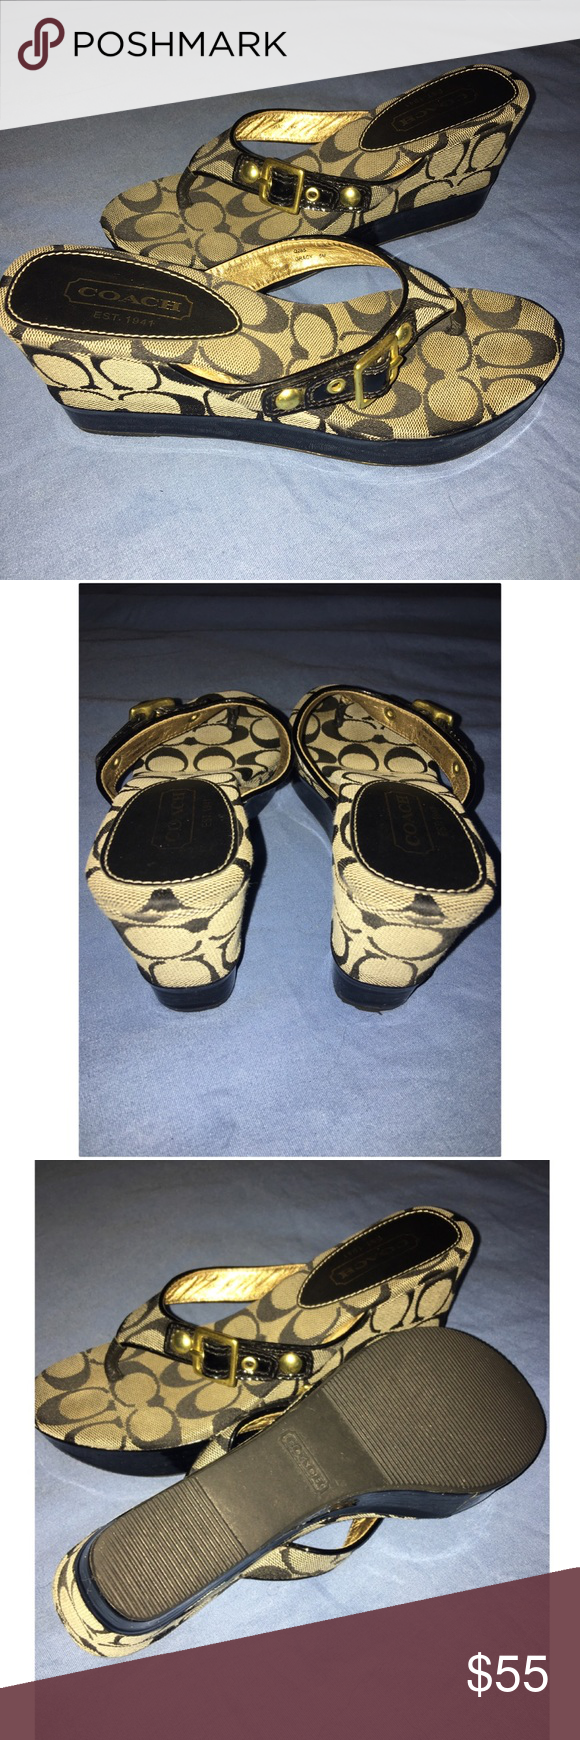 Coach platform/wedges Coach Gracy signature patent leather/jacquard. Gently used, great condition. Coach Shoes Wedges